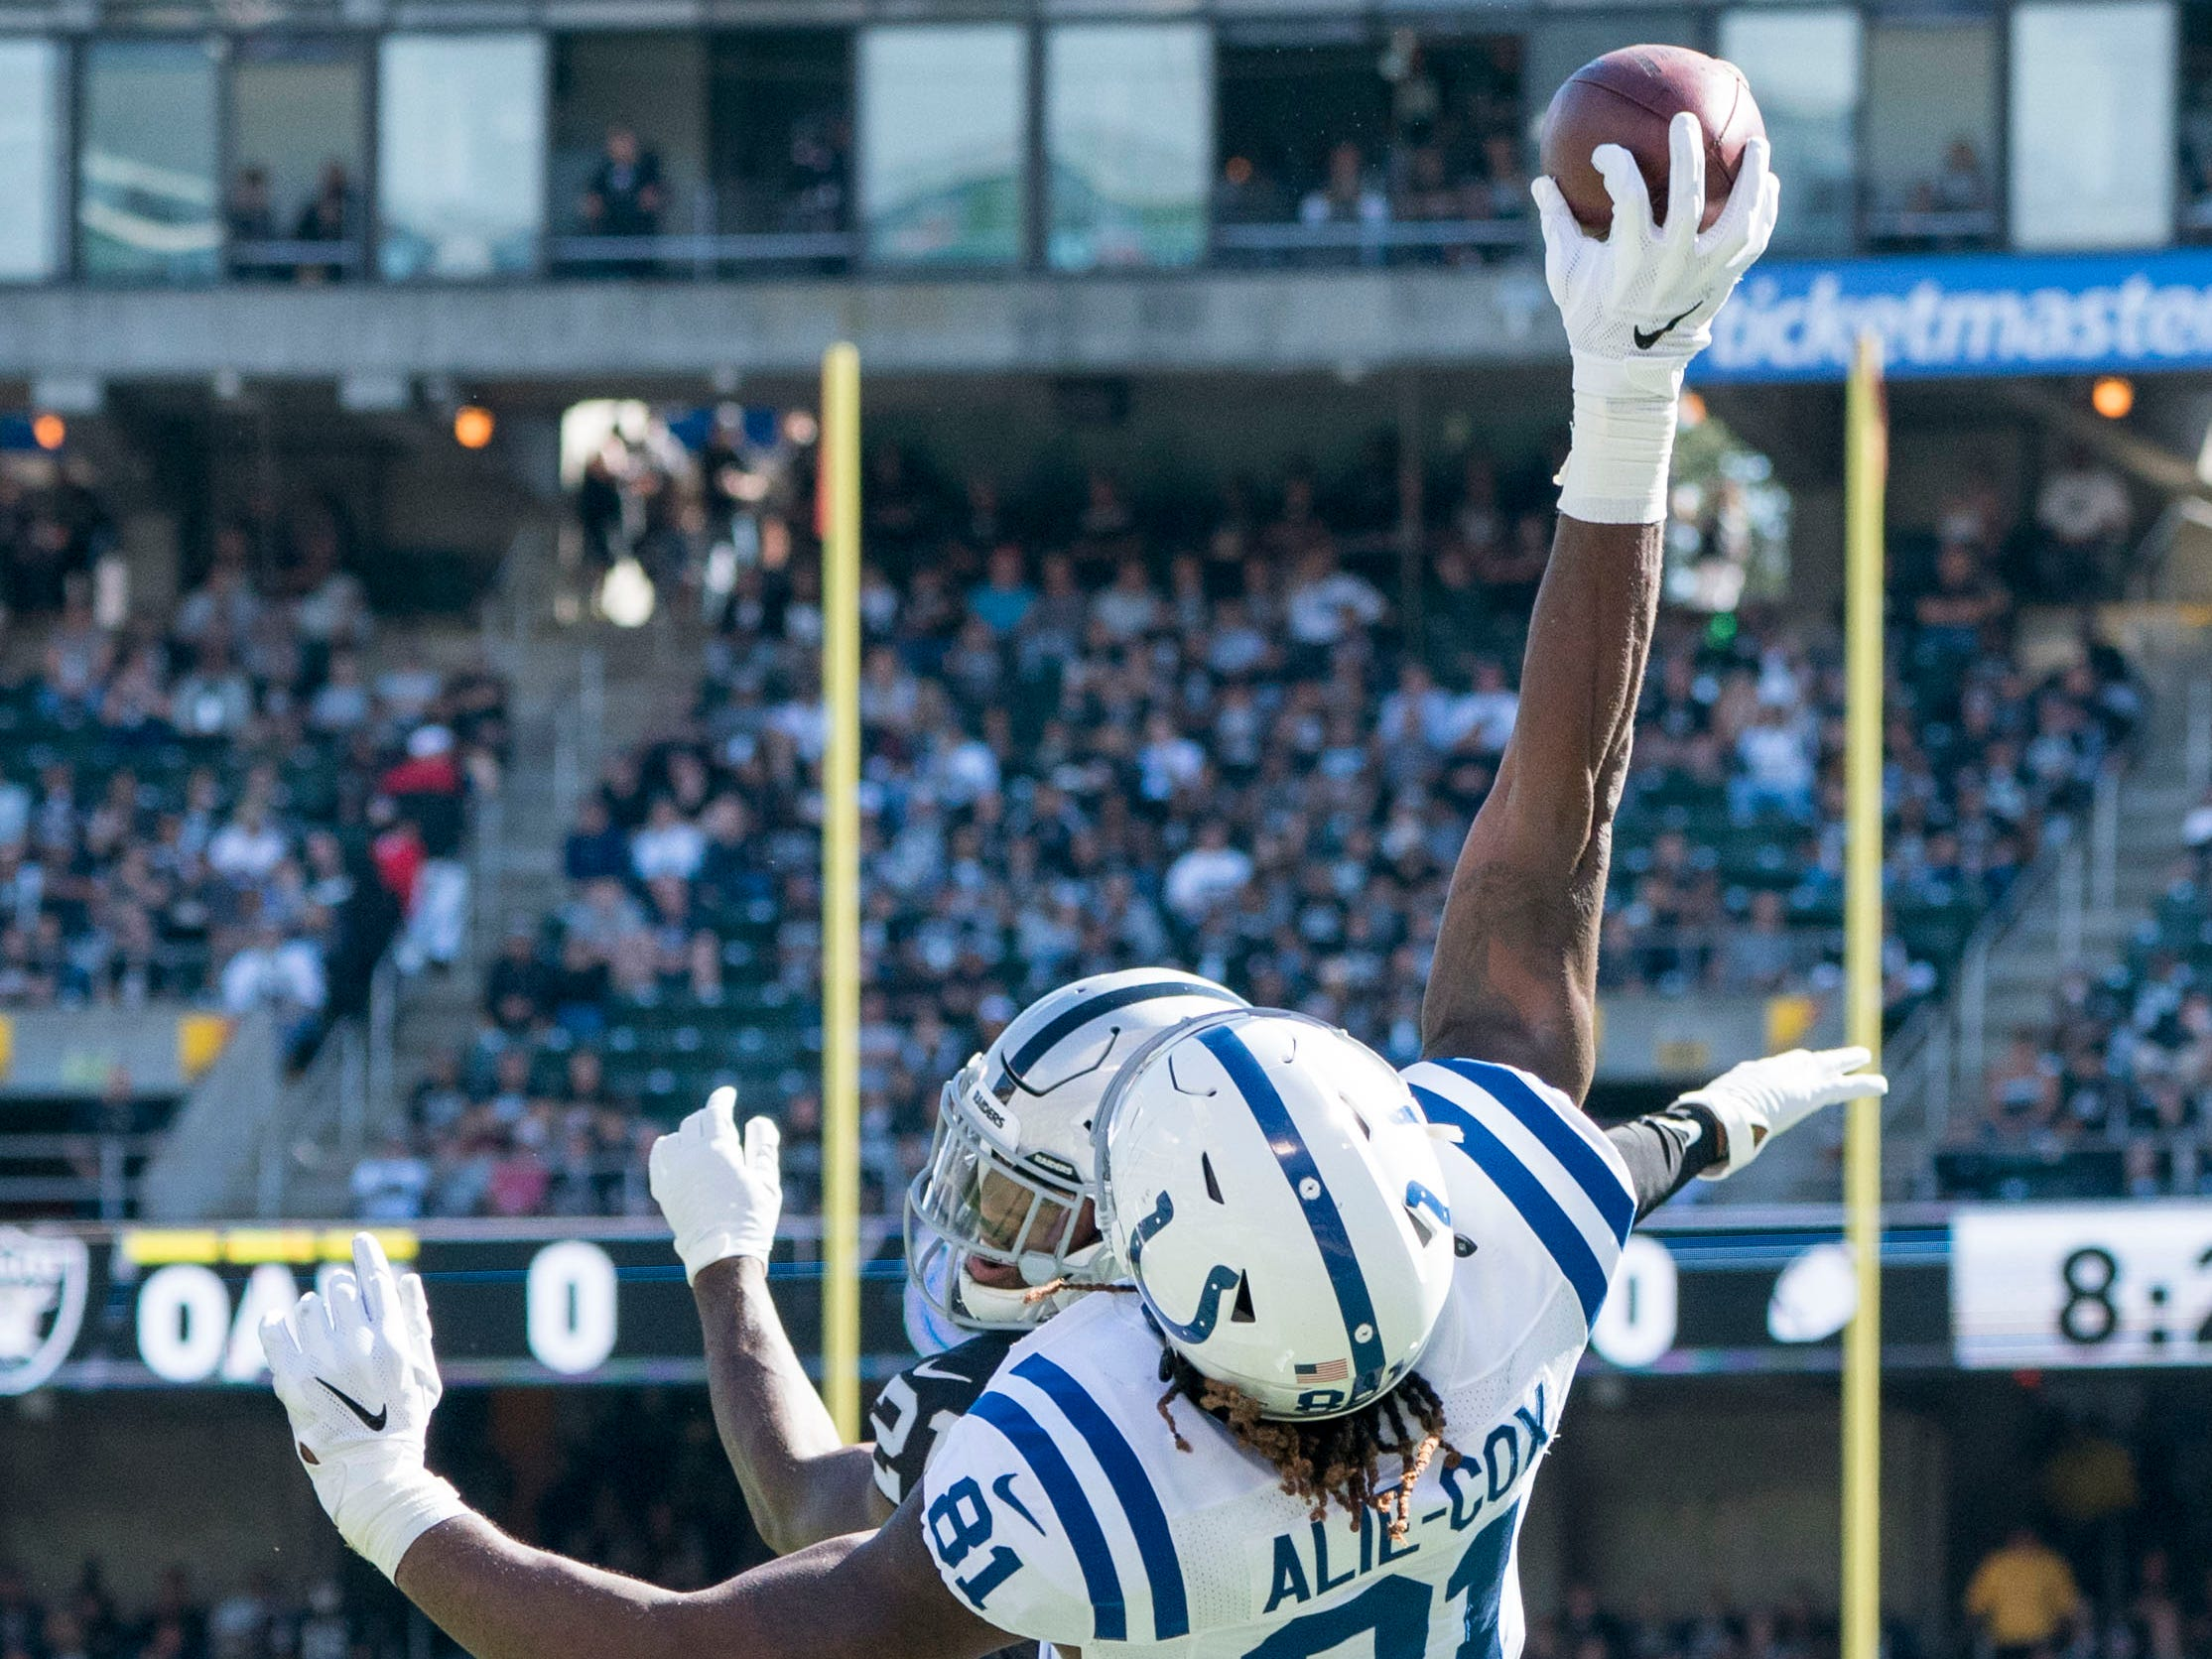 October 28, 2018; Oakland, CA, USA; Indianapolis Colts tight end Mo Alie-Cox (81) catches a touchdown pass against Oakland Raiders cornerback Gareon Conley (21) during the first quarter at Oakland Coliseum. Mandatory Credit: Kyle Terada-USA TODAY Sports